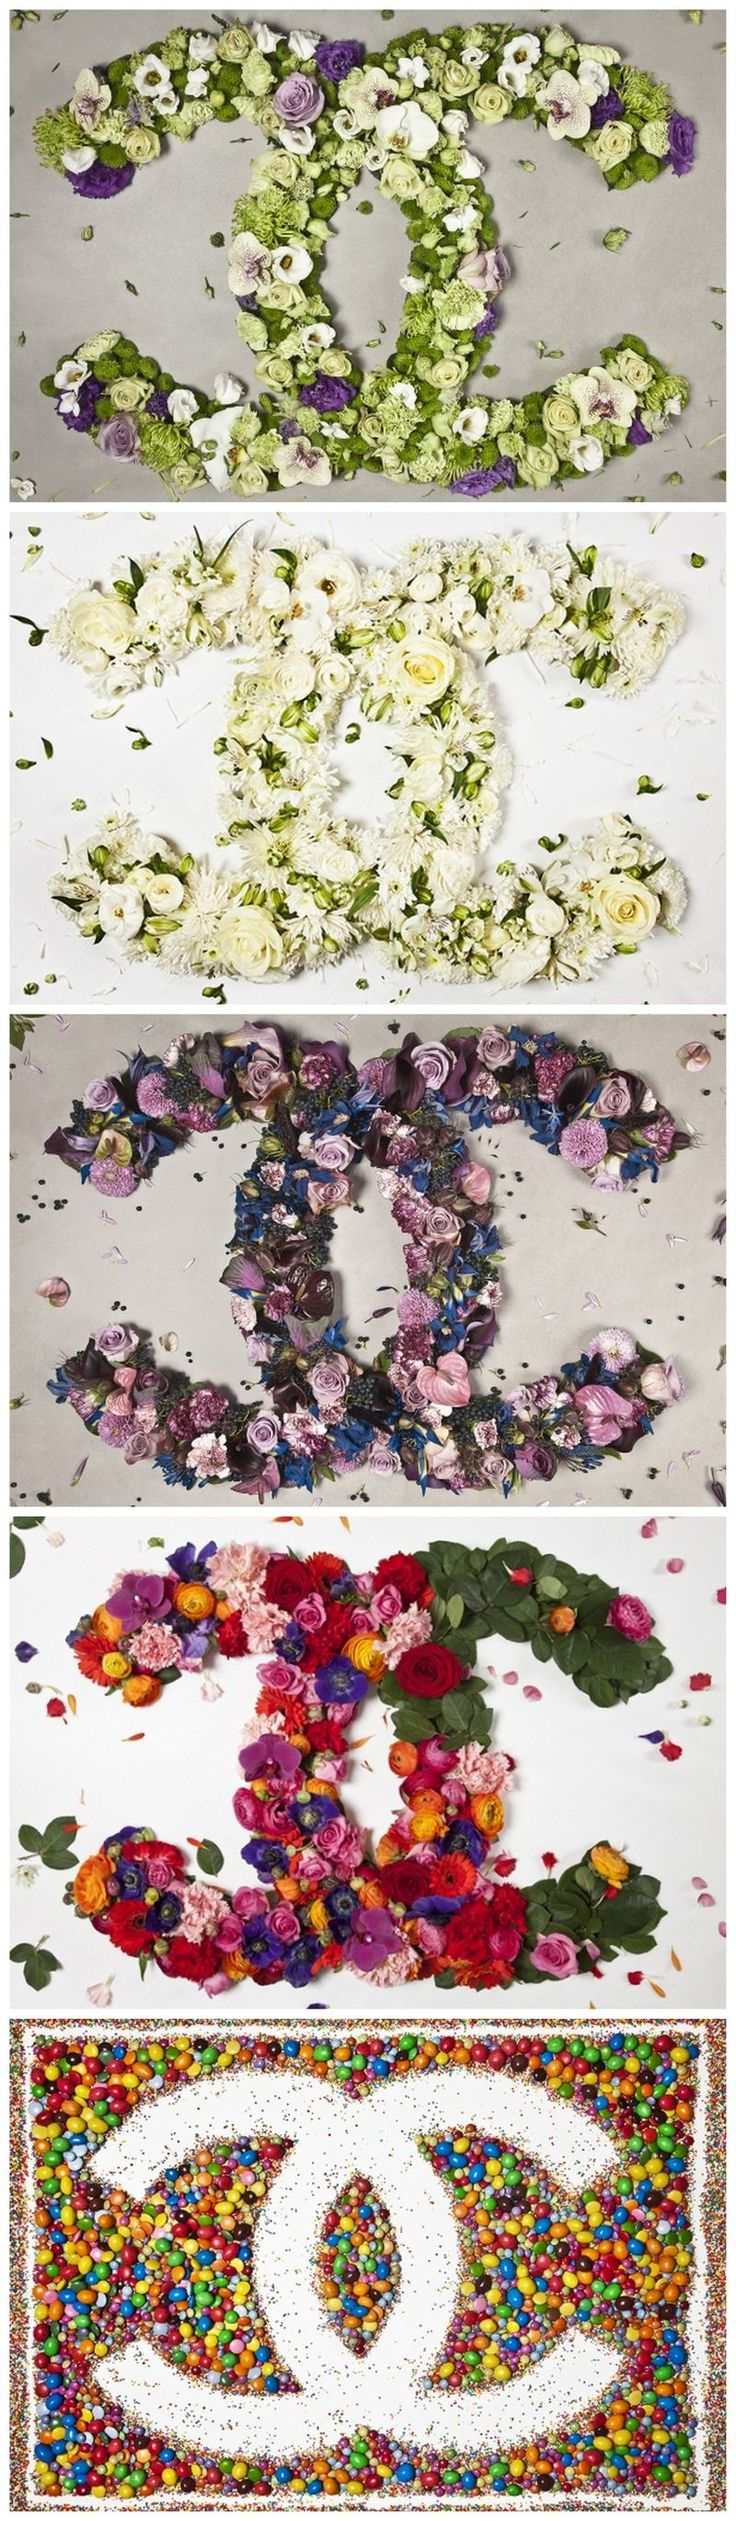 CHANEL | flowers